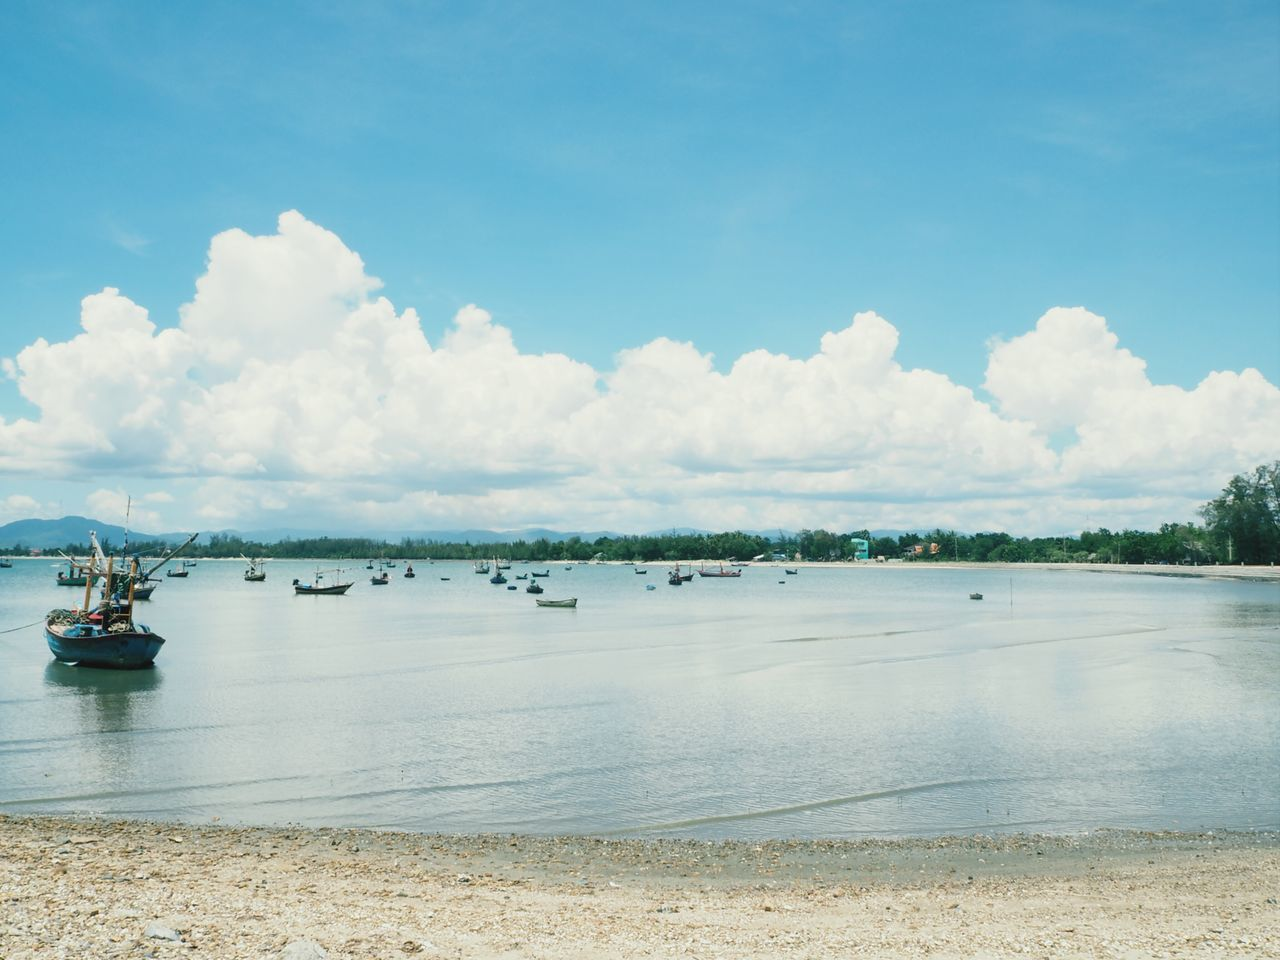 water, sky, cloud - sky, sea, scenics, tranquility, day, nature, outdoors, tranquil scene, beauty in nature, no people, transportation, nautical vessel, beach, travel destinations, horizon over water